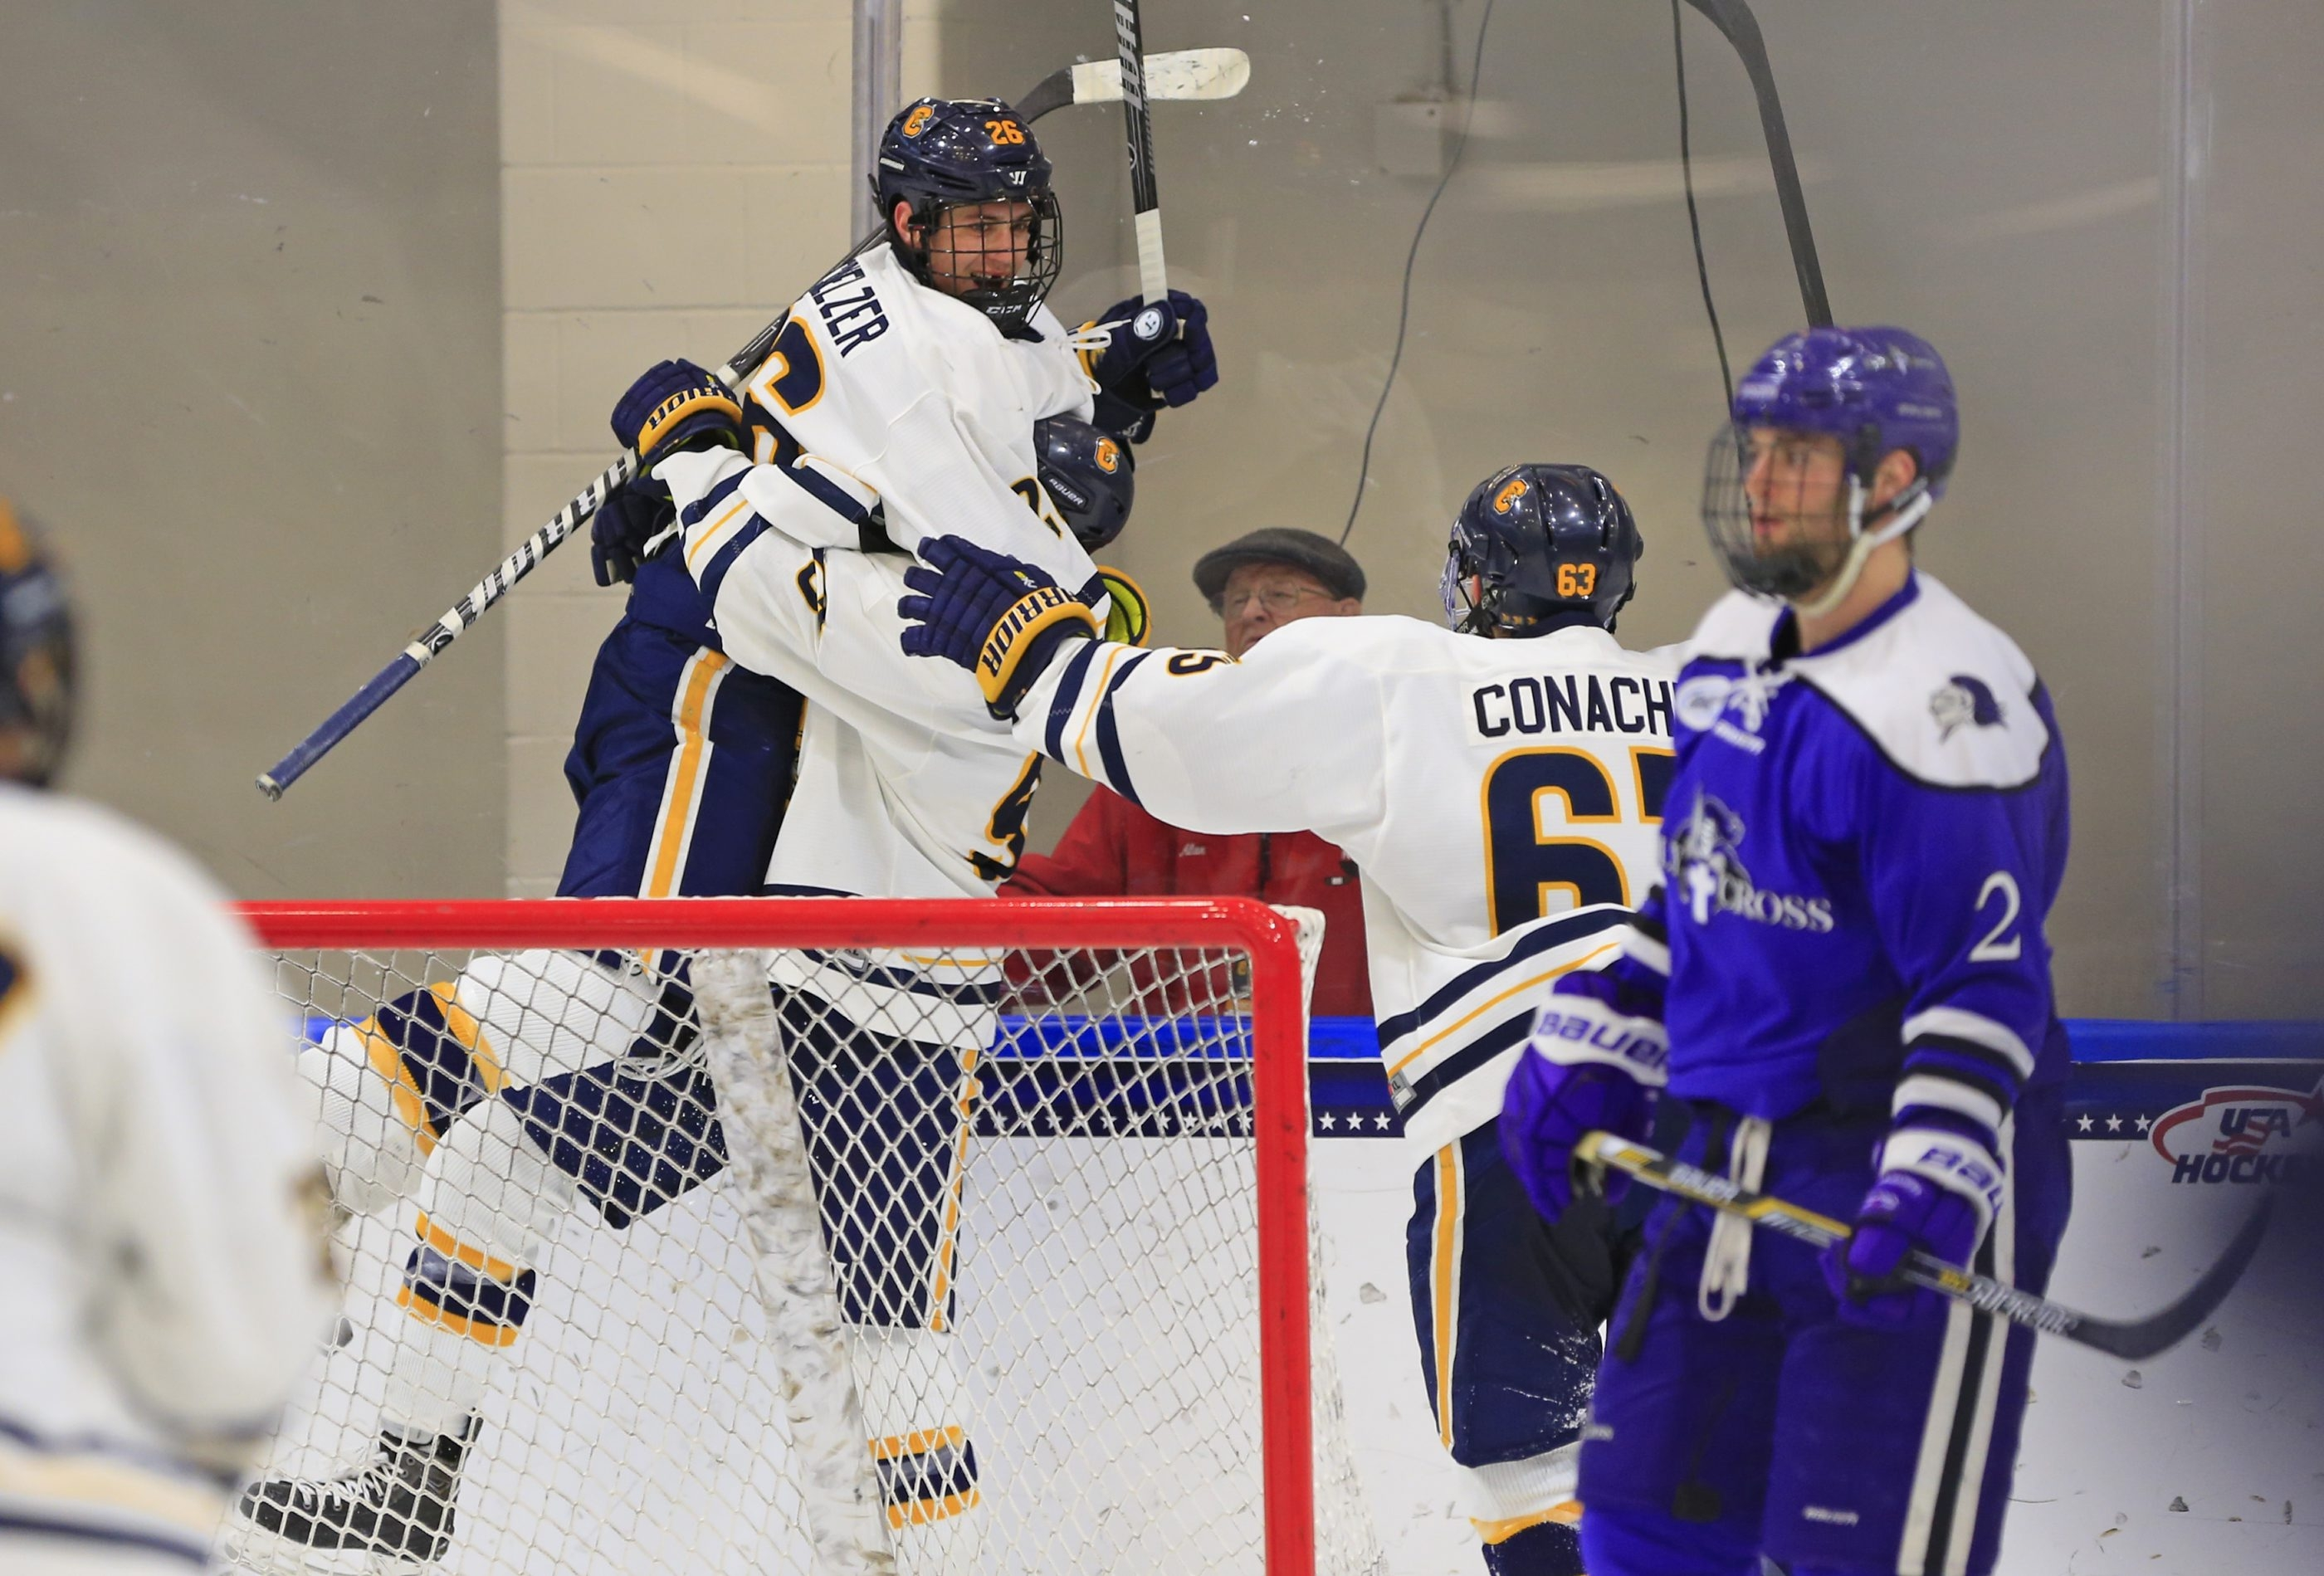 Canisius College's Ryan Schmelzer (26) celebrates his game winning goal in overtine against  Holy Cross during action in the Atlantic Hockey conference at the HarborCenter in Buffalo,NY on Friday, Jan. 9, 2015. USA defeated Russia 7-1 (Harry Scull Jr./Buffalo News)